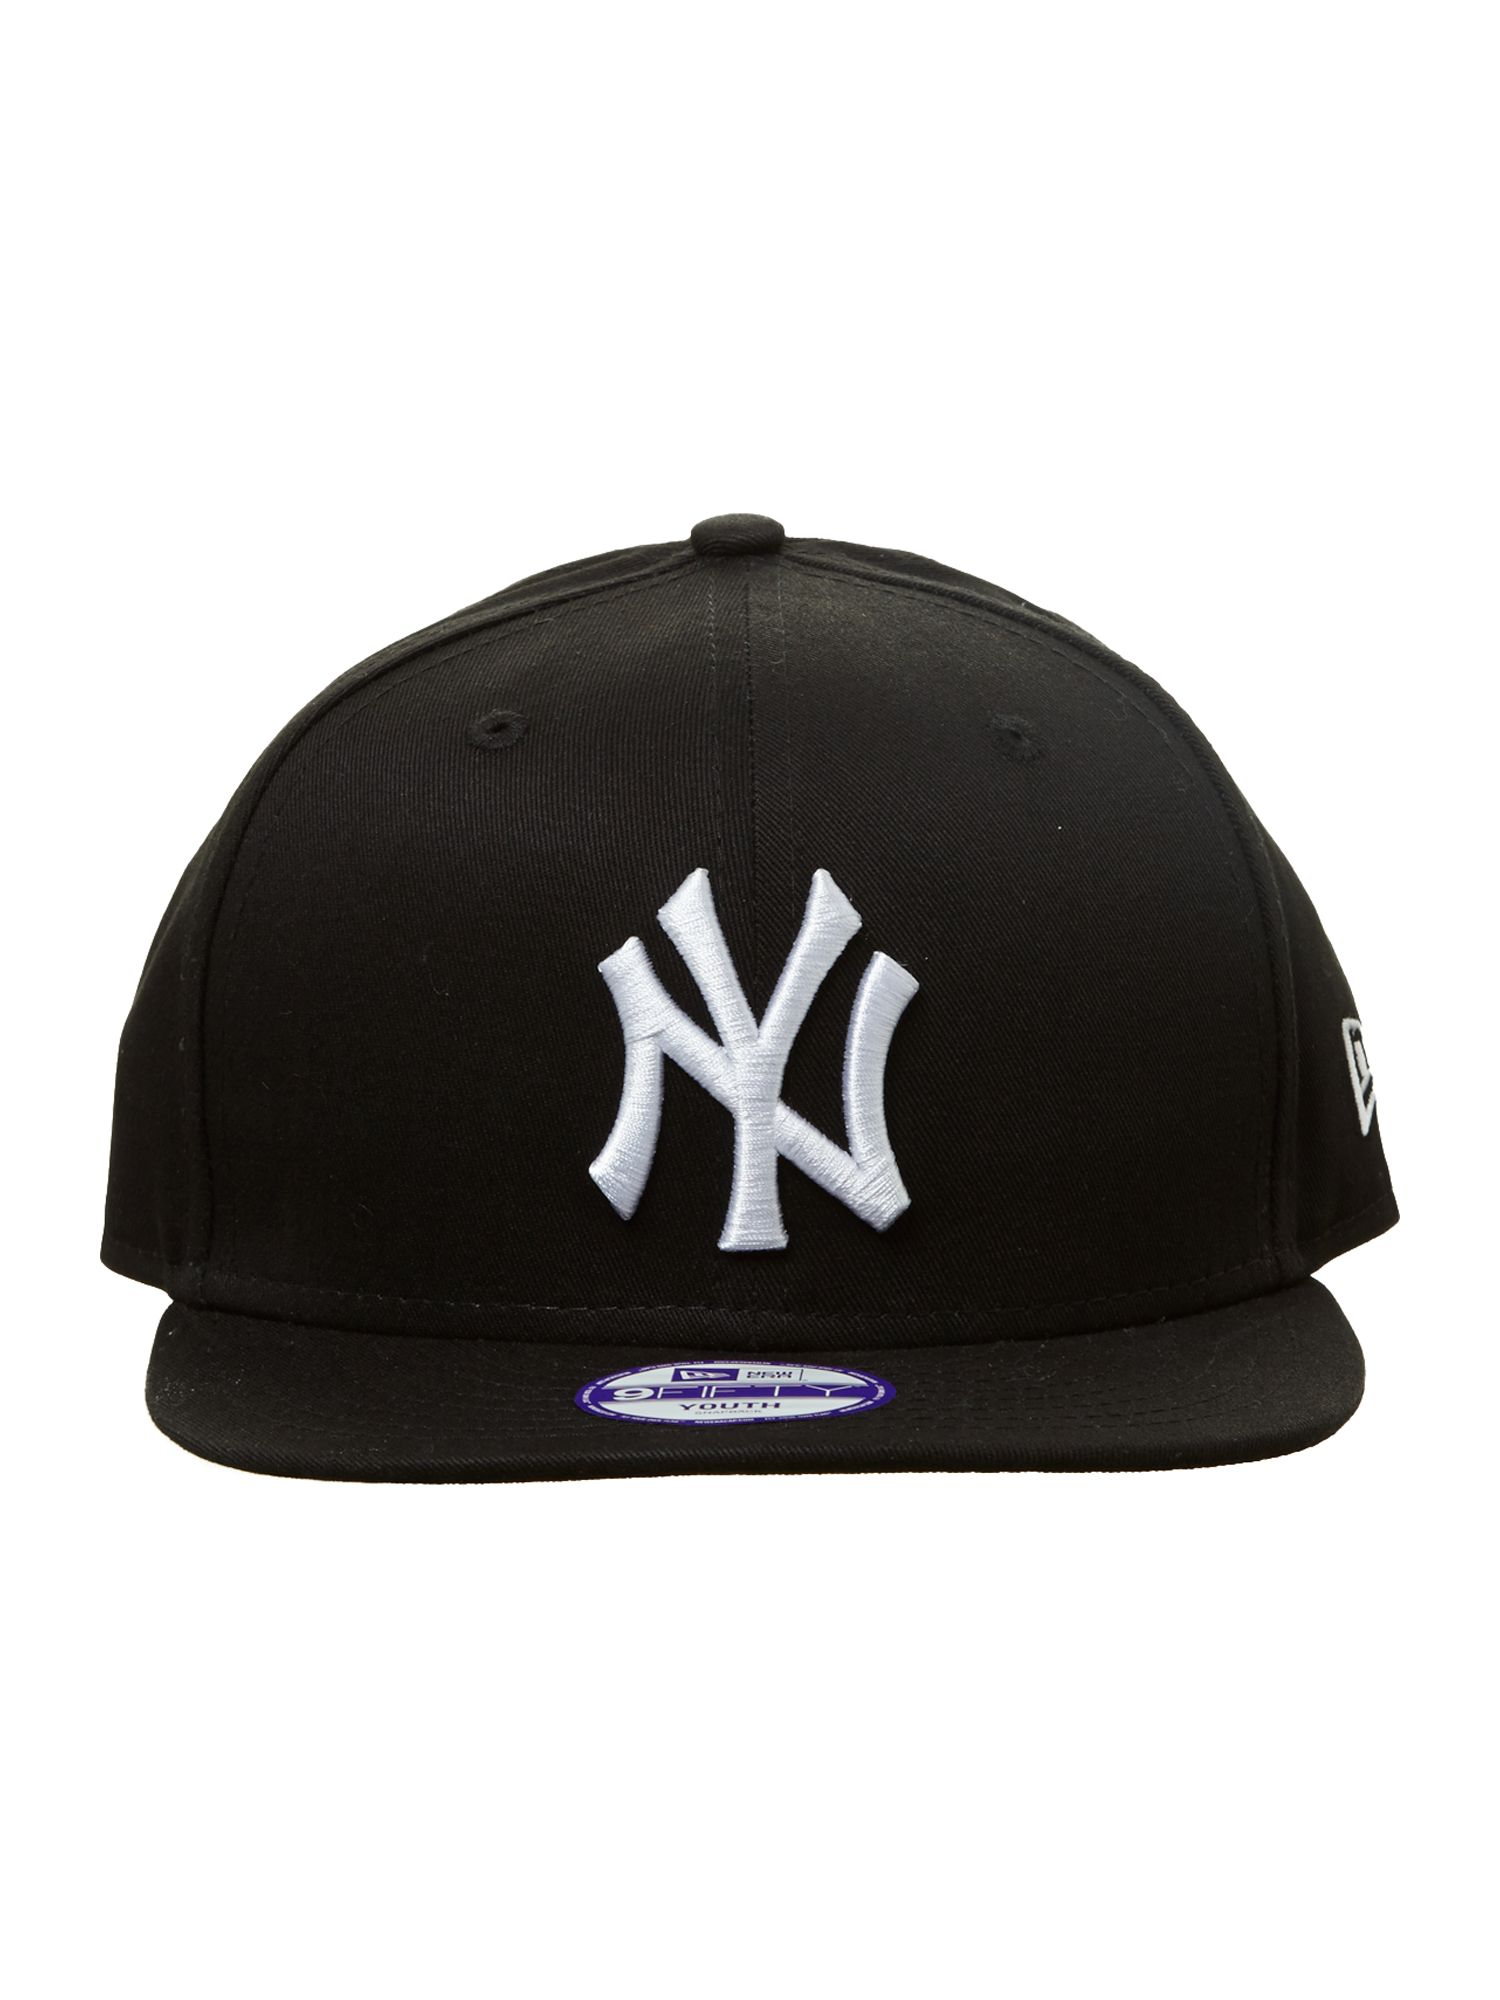 Kid`s 9Fifty NY hat